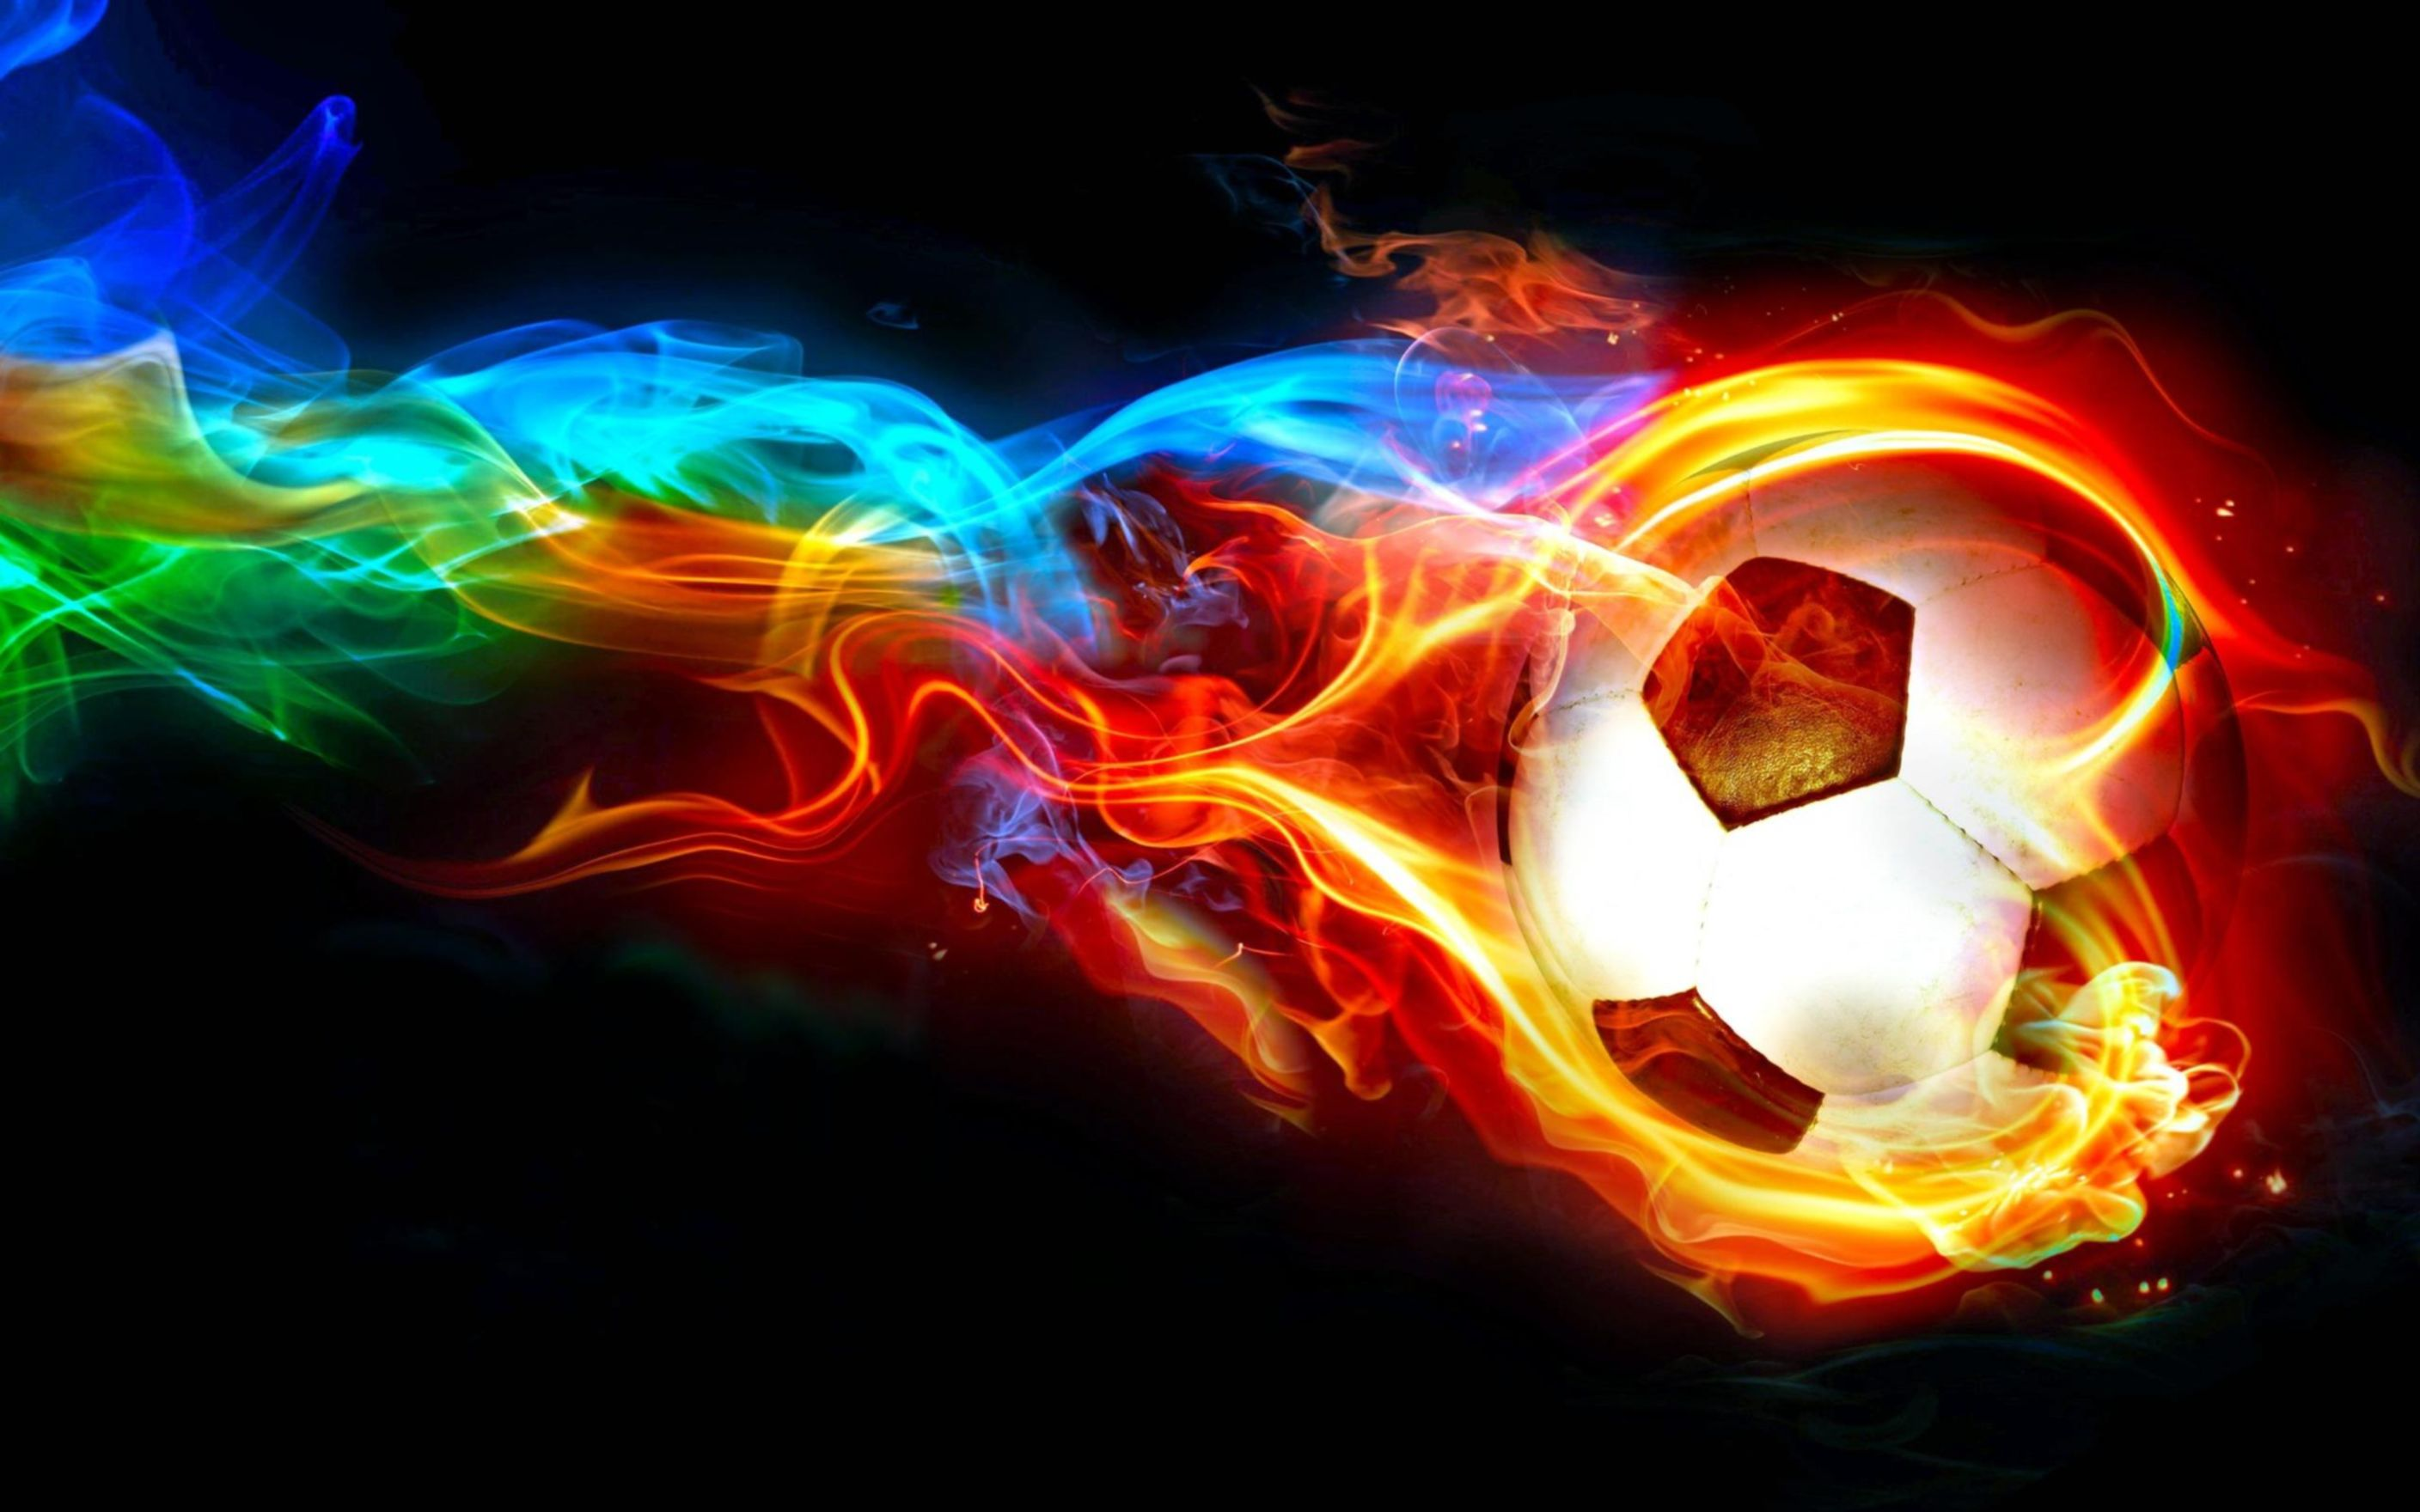 Download free HD Ball in Flames Wallpaper, image